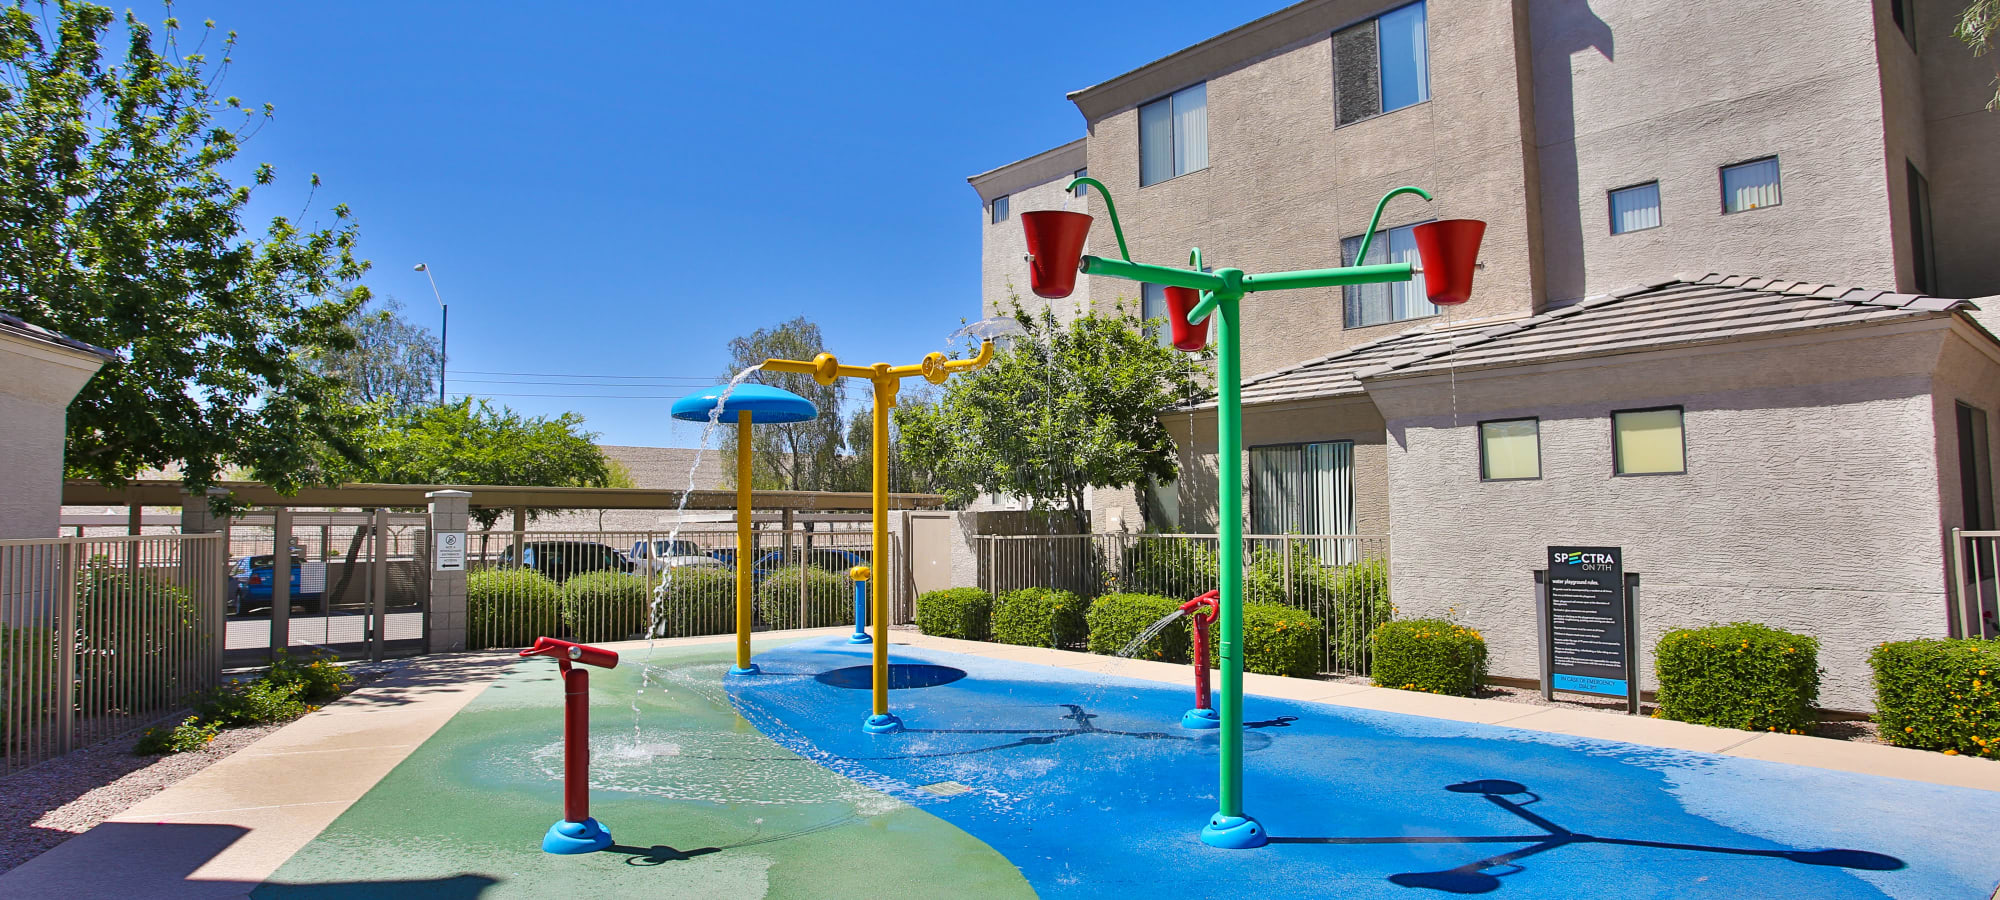 A playground with water features at Spectra on 7th South in Phoenix, Arizona